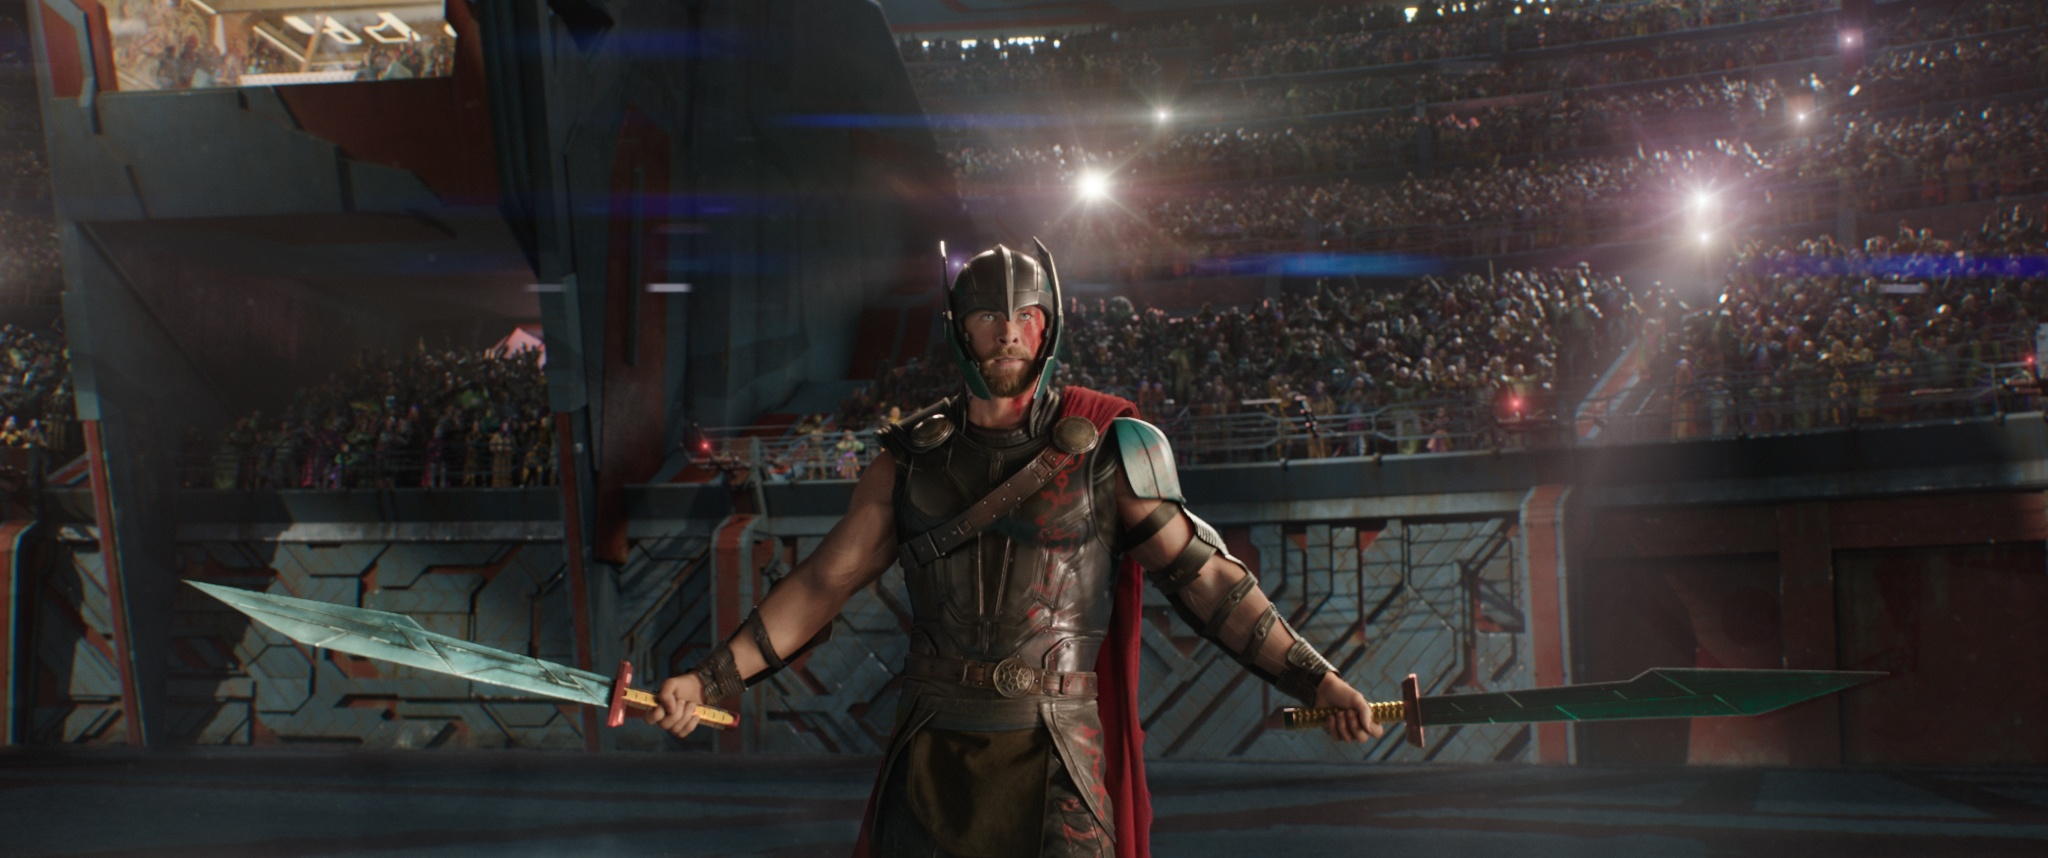 THOR: RAGNAROK comes out in theaters nationwide November 3rd!